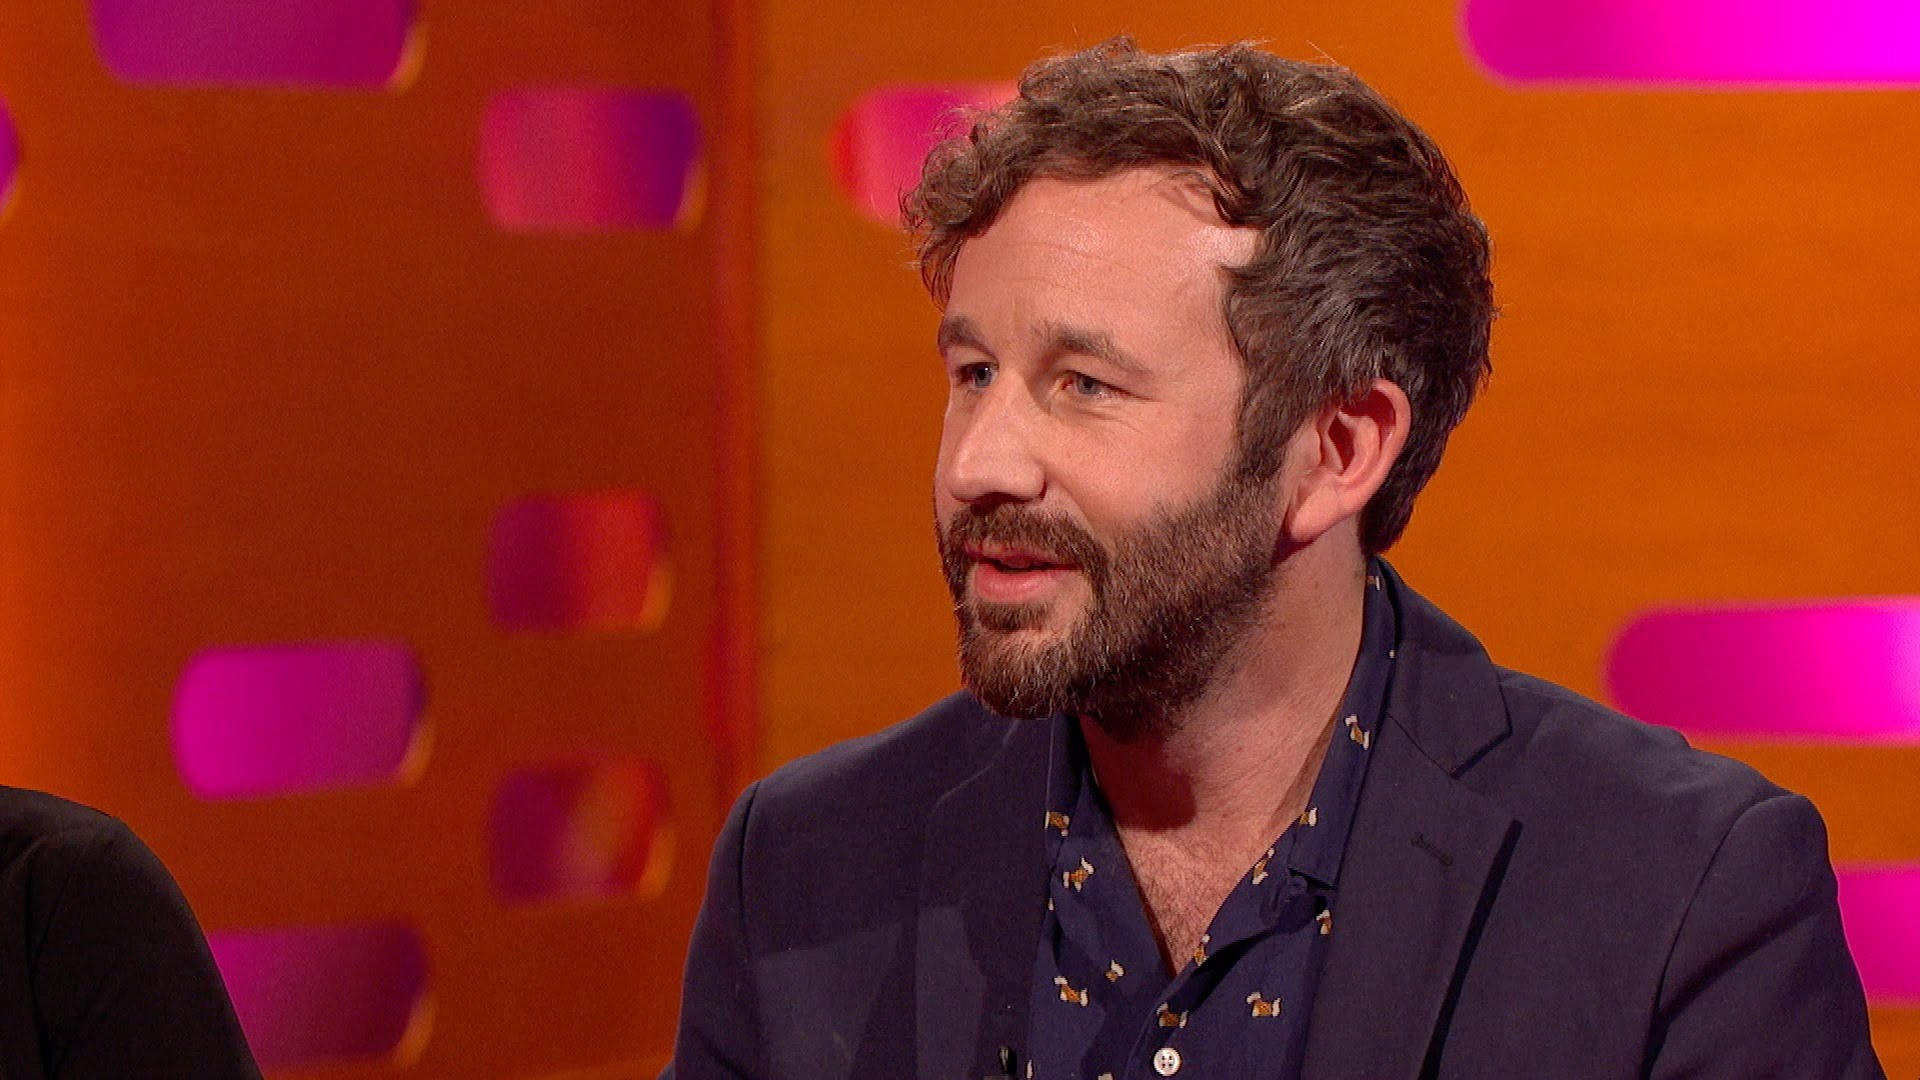 Chris O'Dowd Backgrounds on Wallpapers Vista